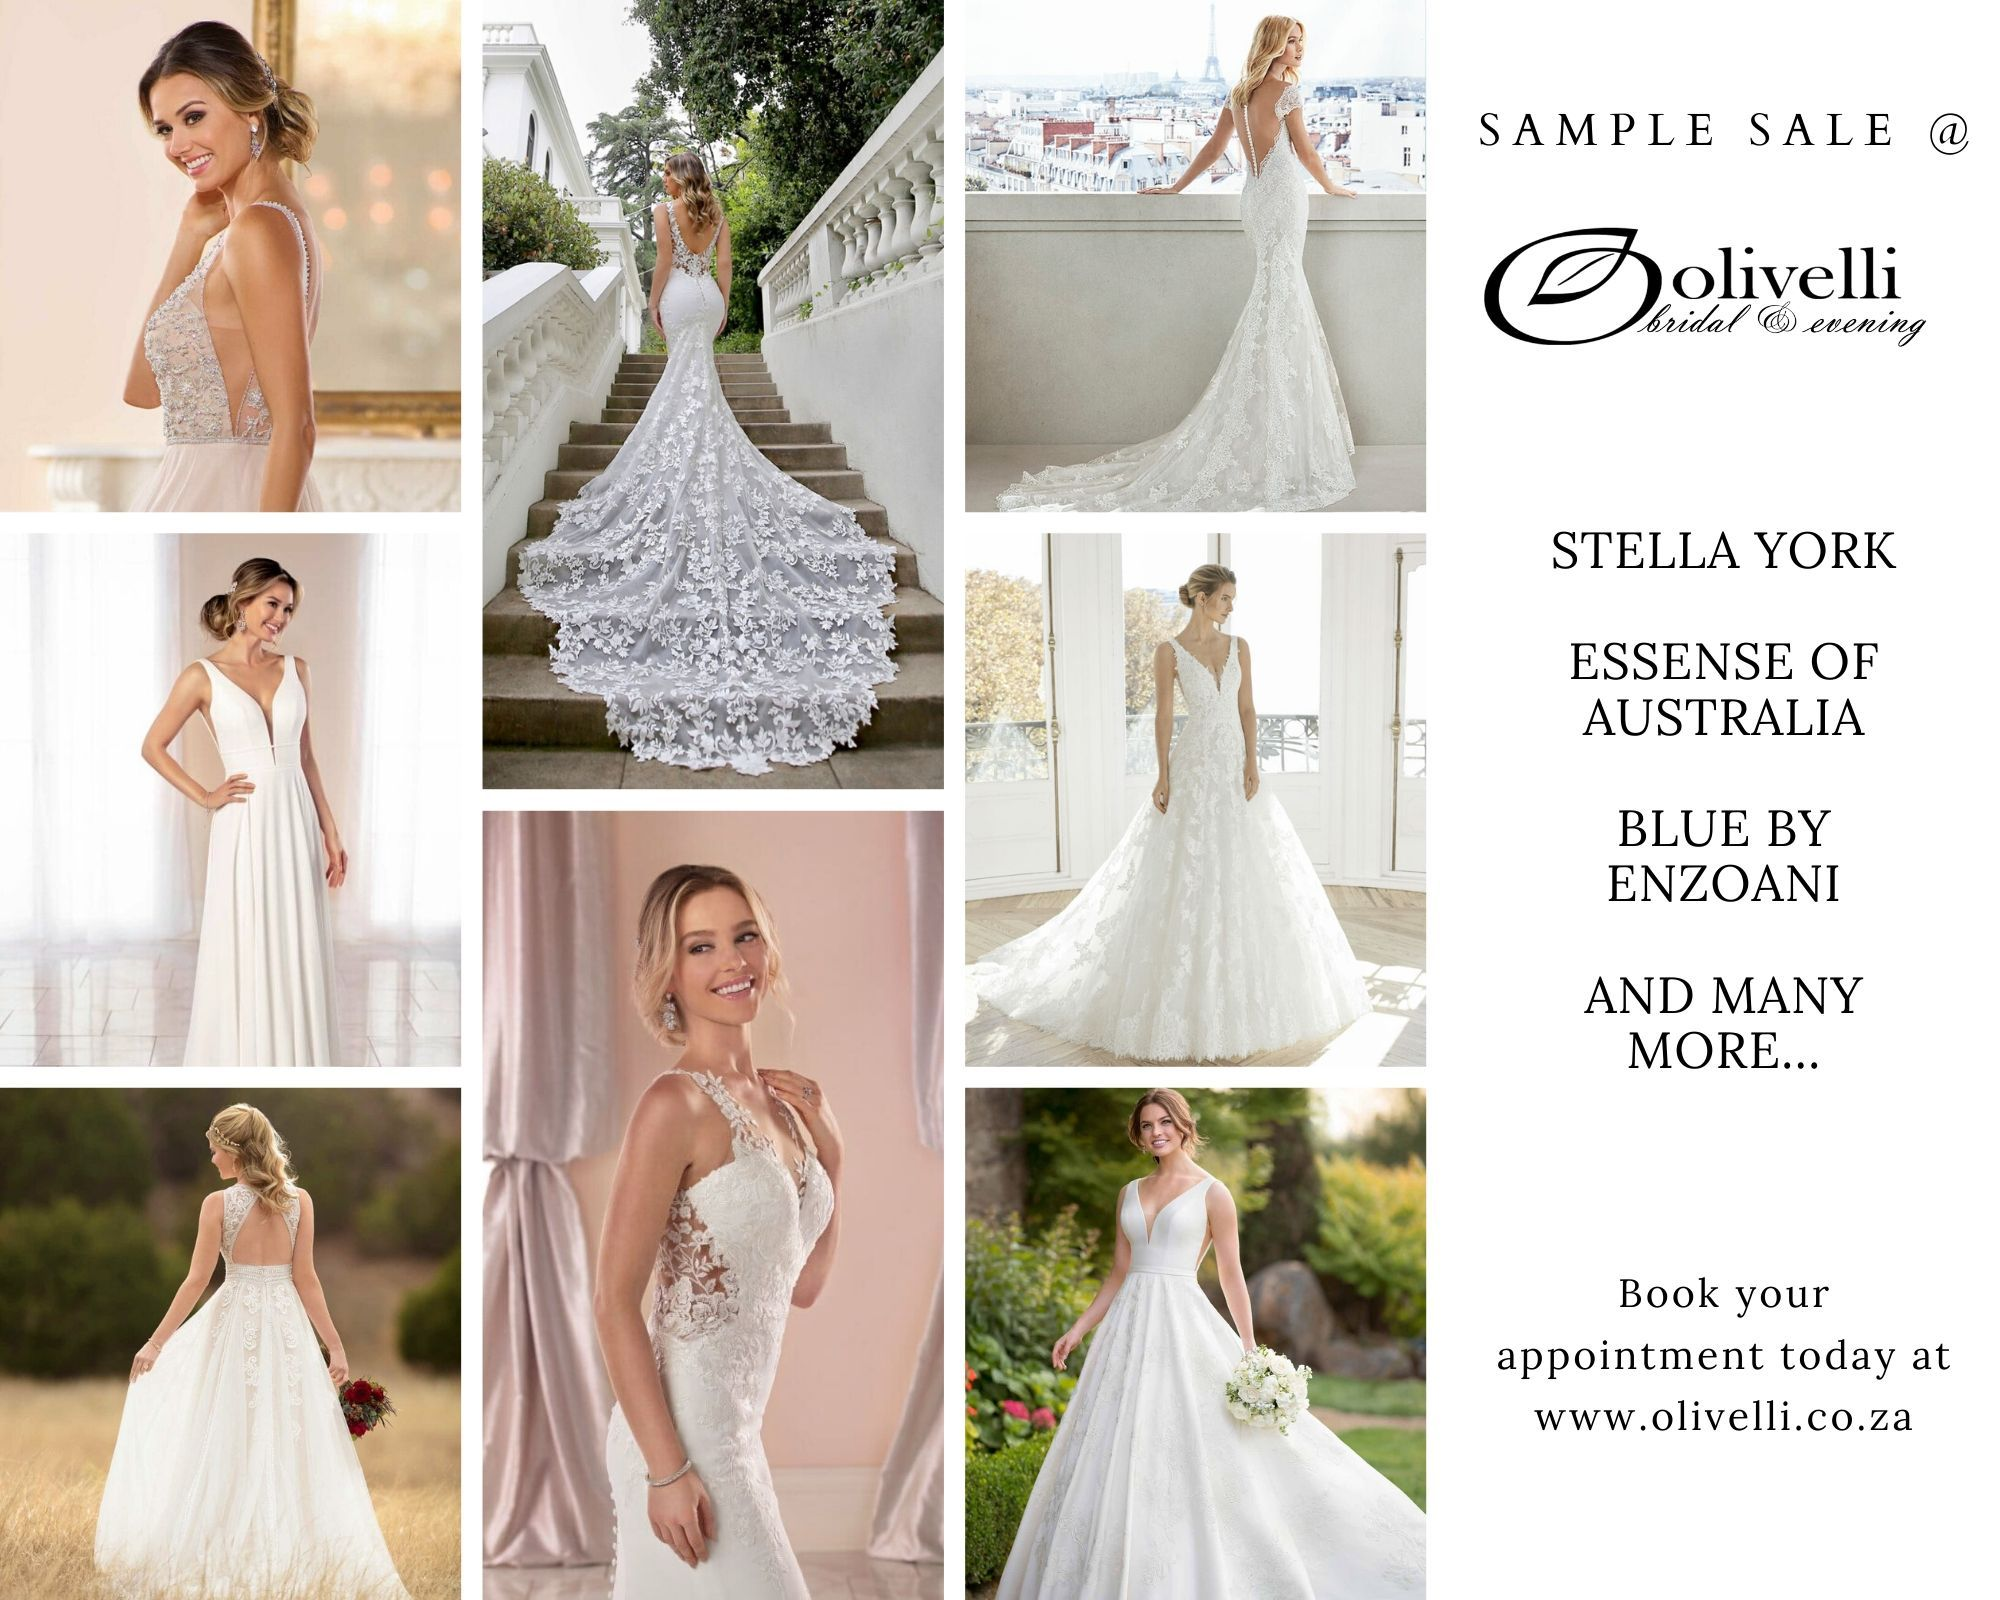 Olivelli Bridal Gowns In 2020 Wedding Dresses Matric Dance Dresses Bridesmaid